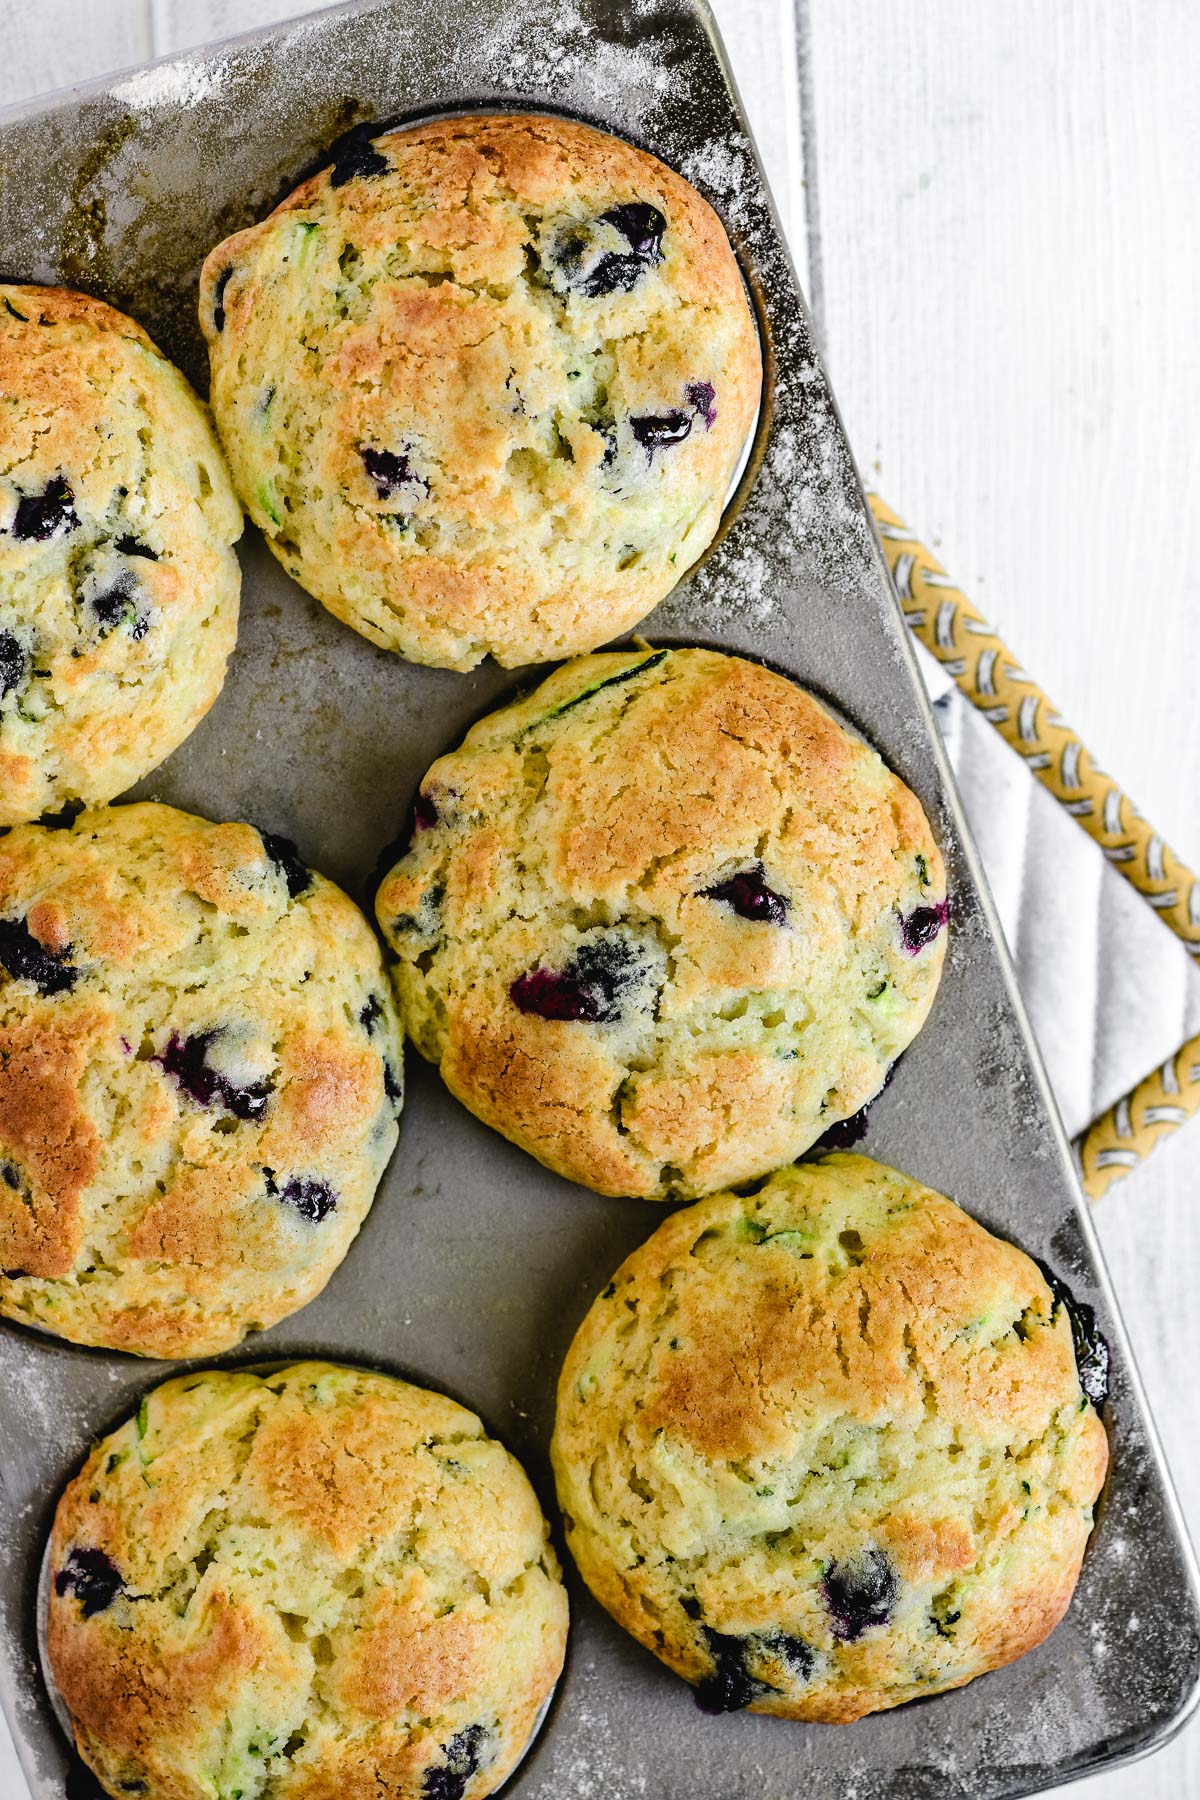 blueberry zucchini muffins just out of the oven